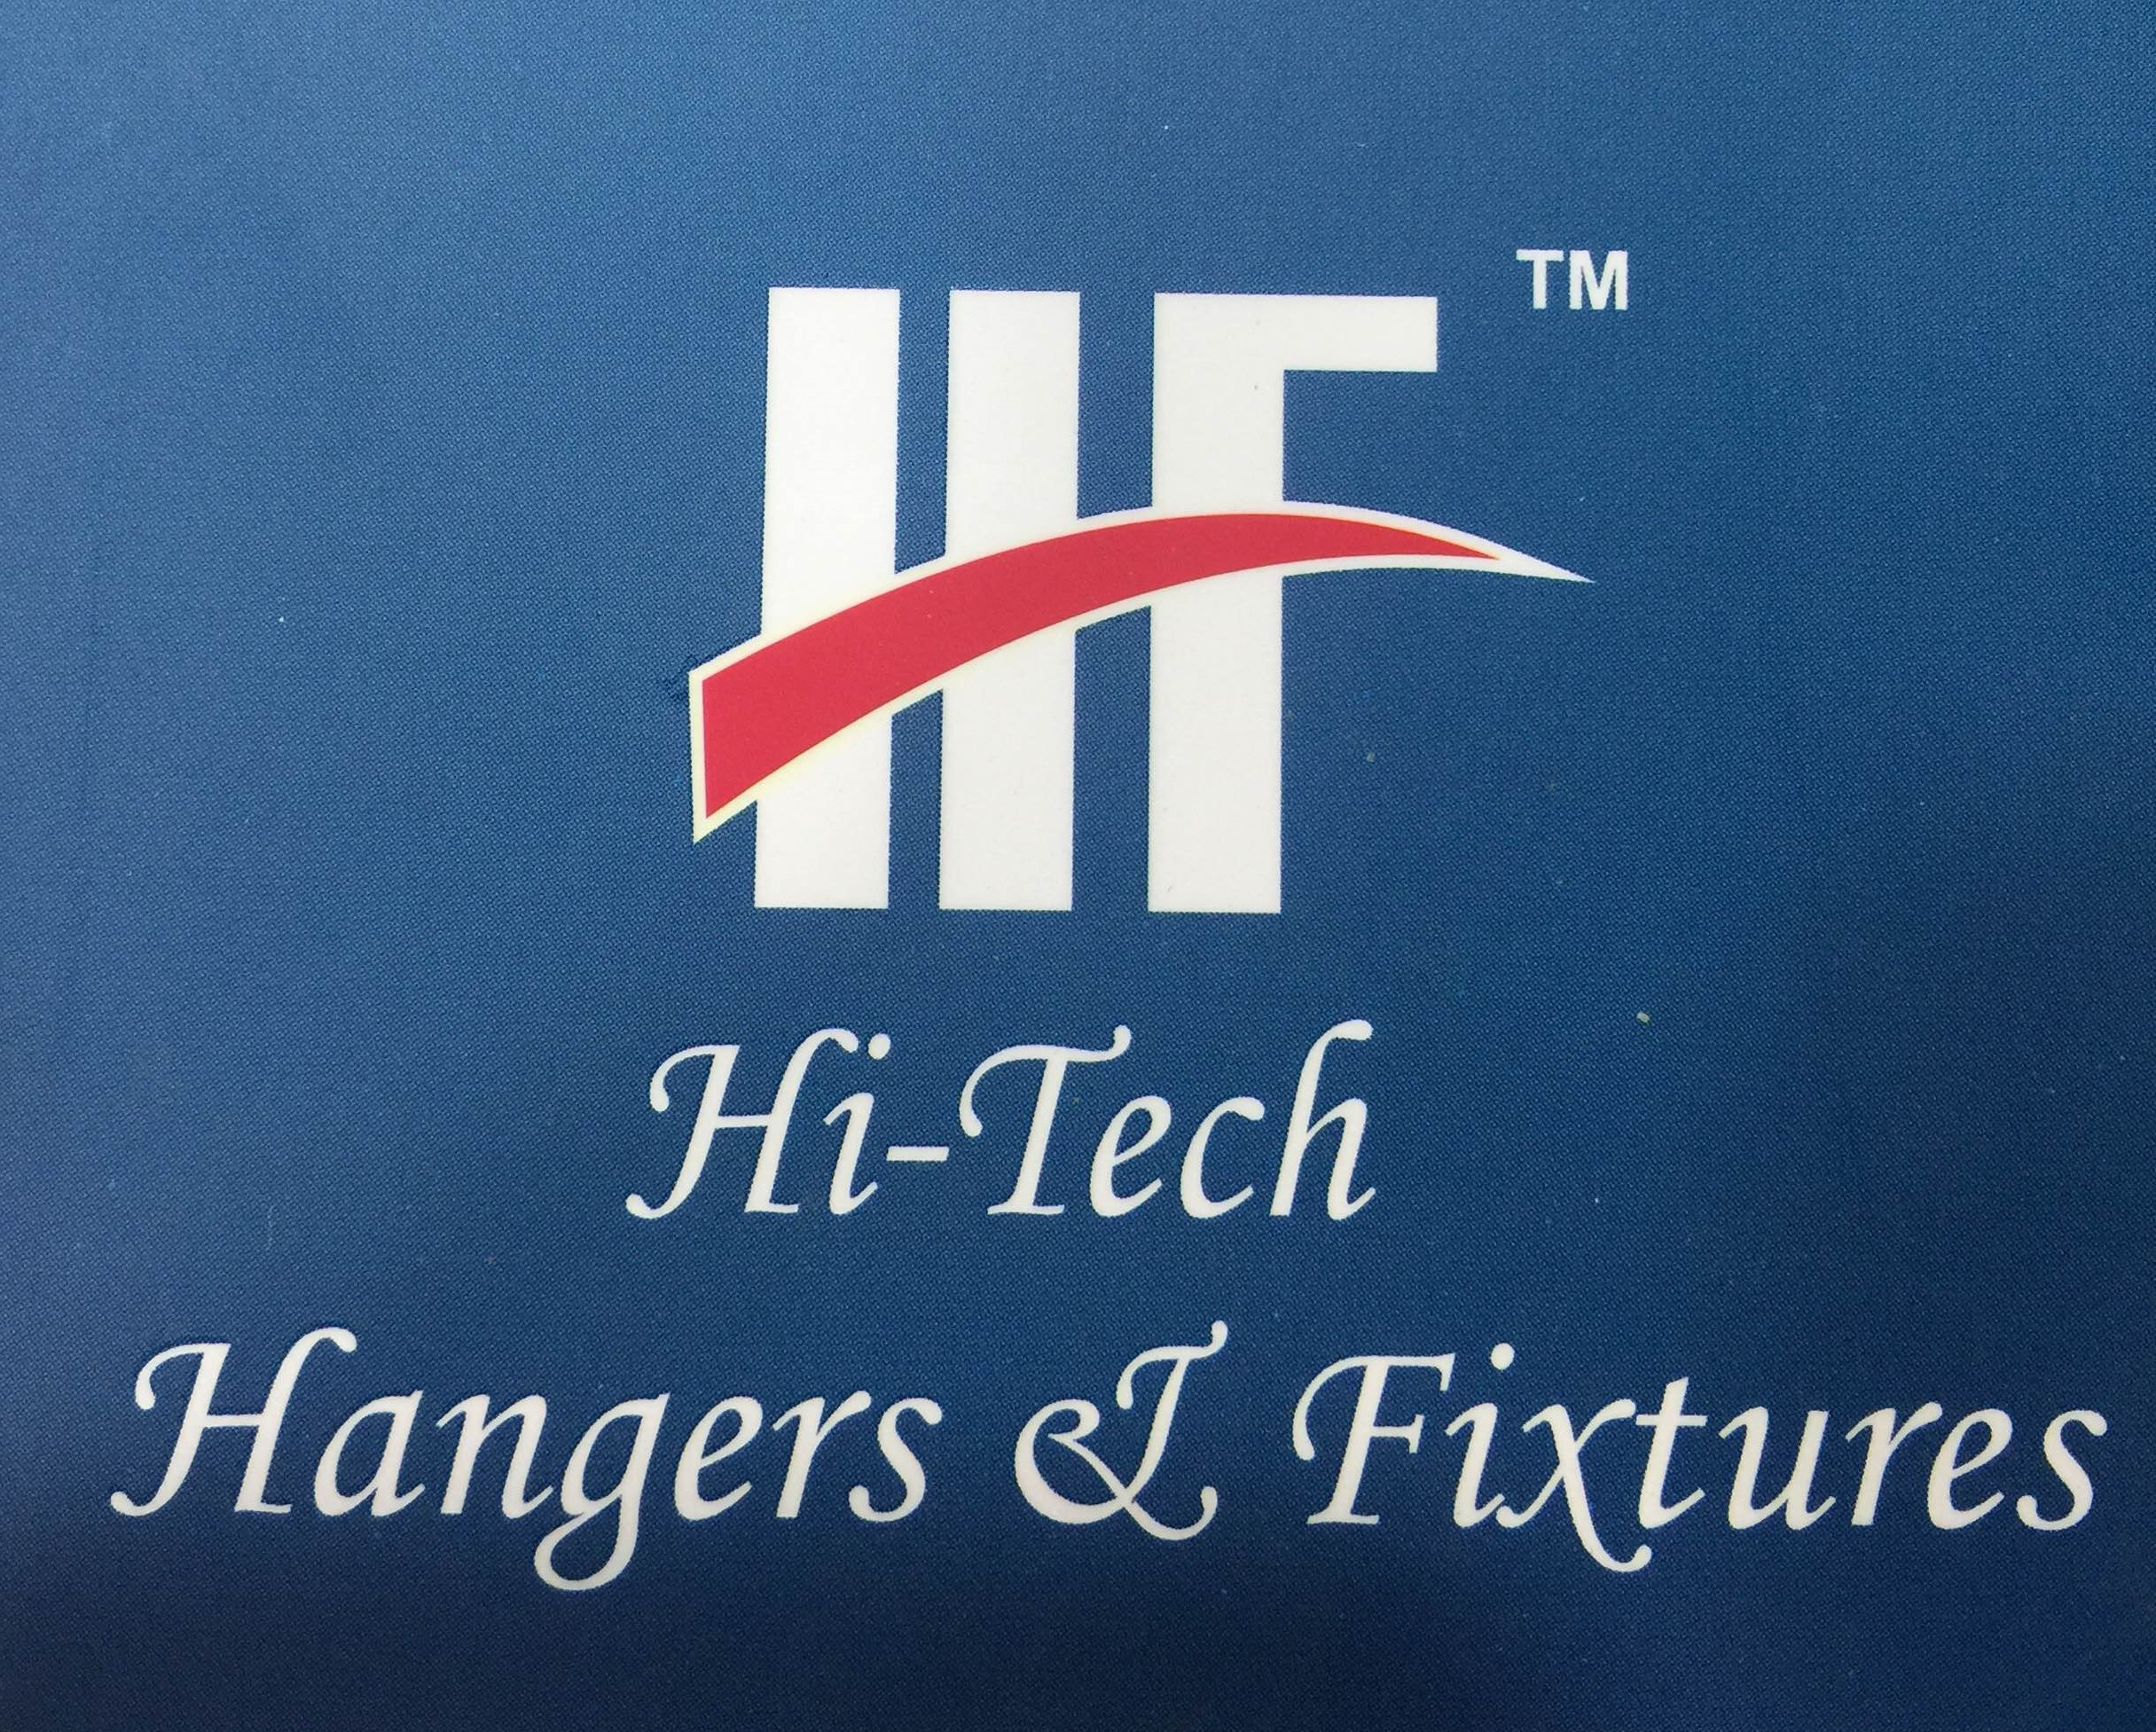 Hi Tech Hangers & Fixtures - logo